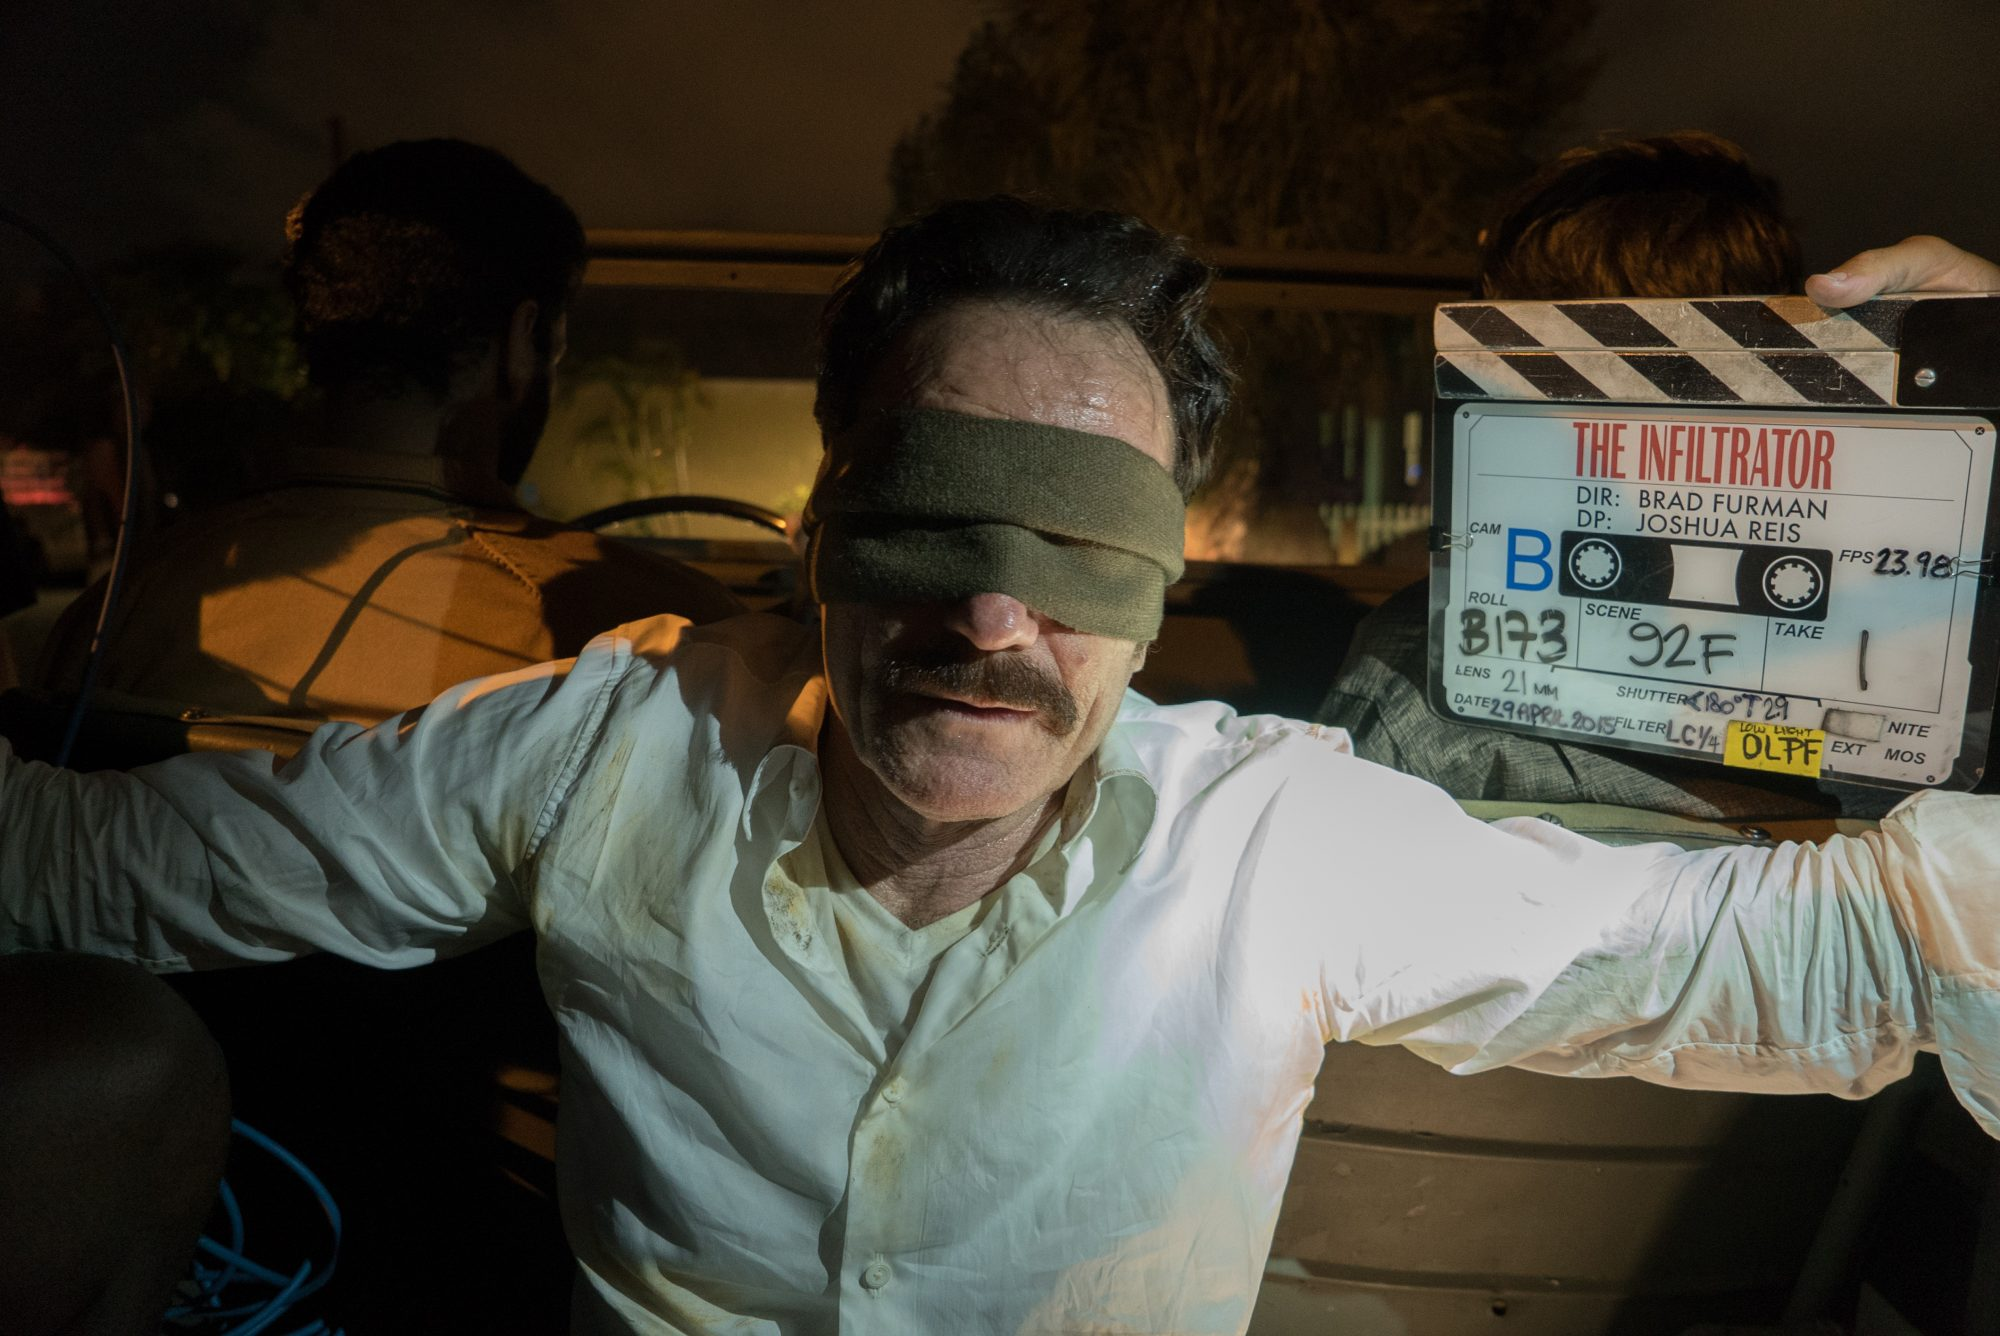 Actor Bryan Cranston readies for action on the set of THE INFILTRATOR, a Broad Green Pictures release.Credit: David Lee / Broad Green Pictures